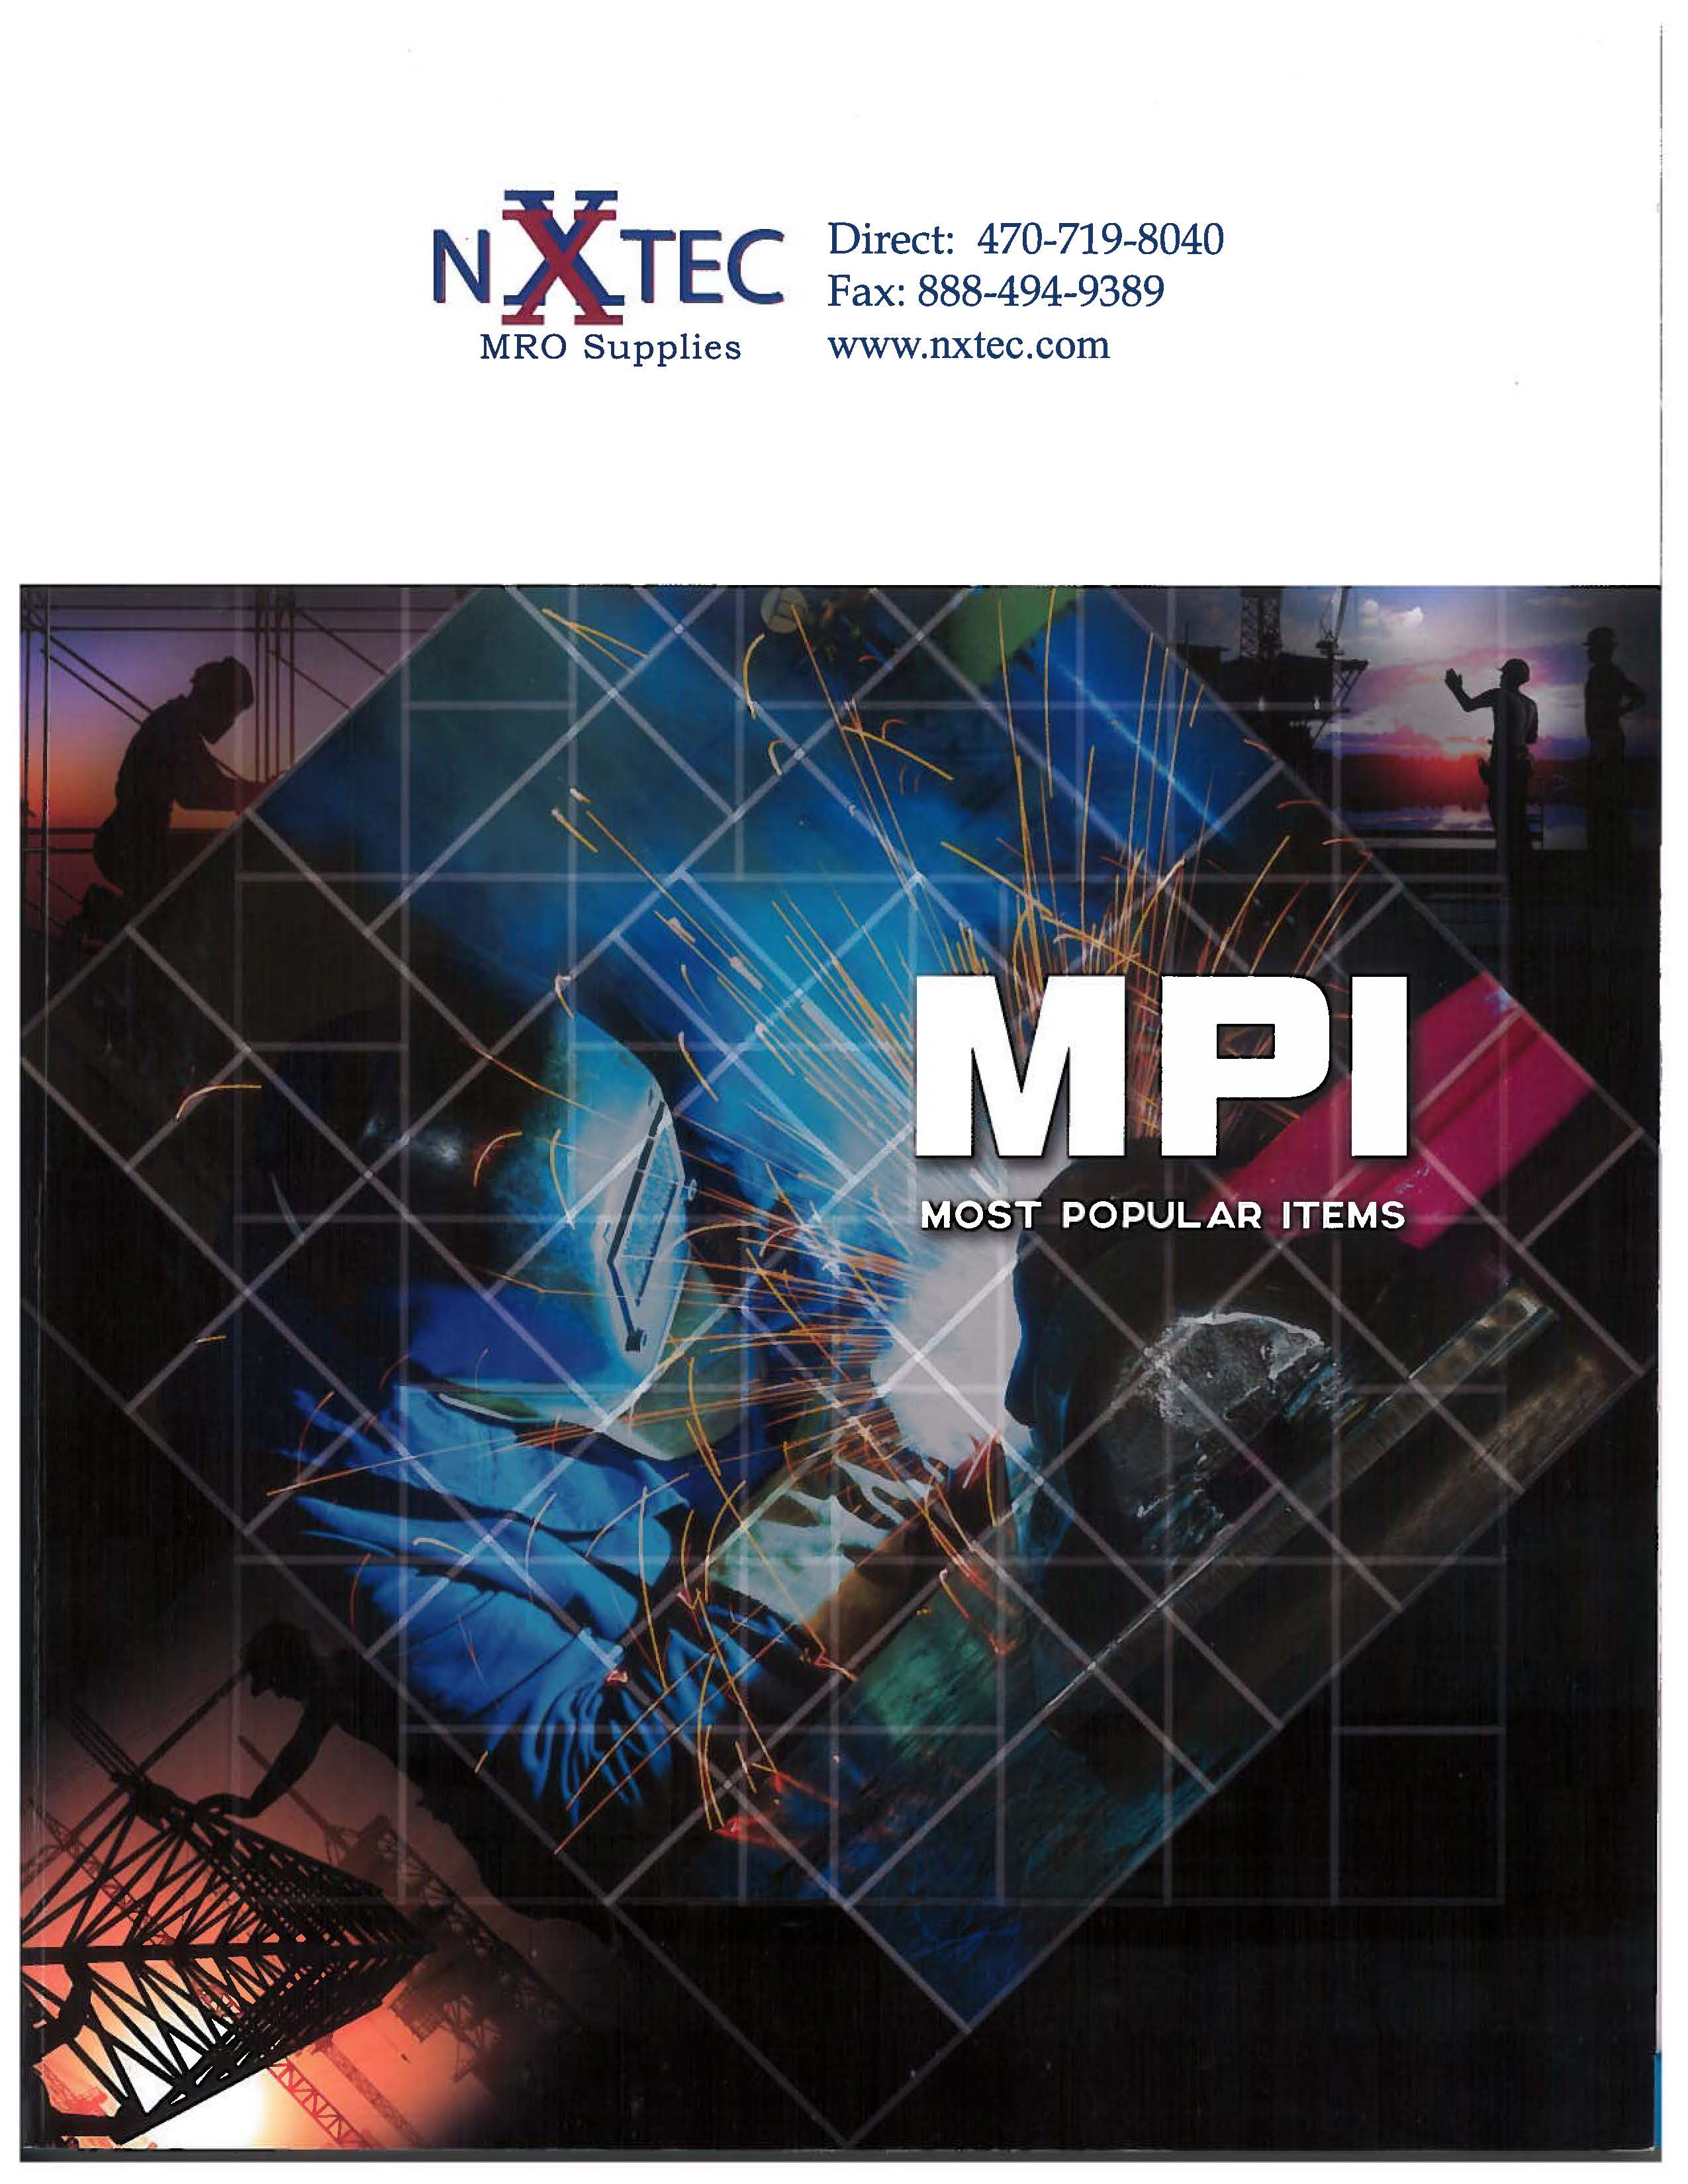 MPI COVER SHEET PART 1